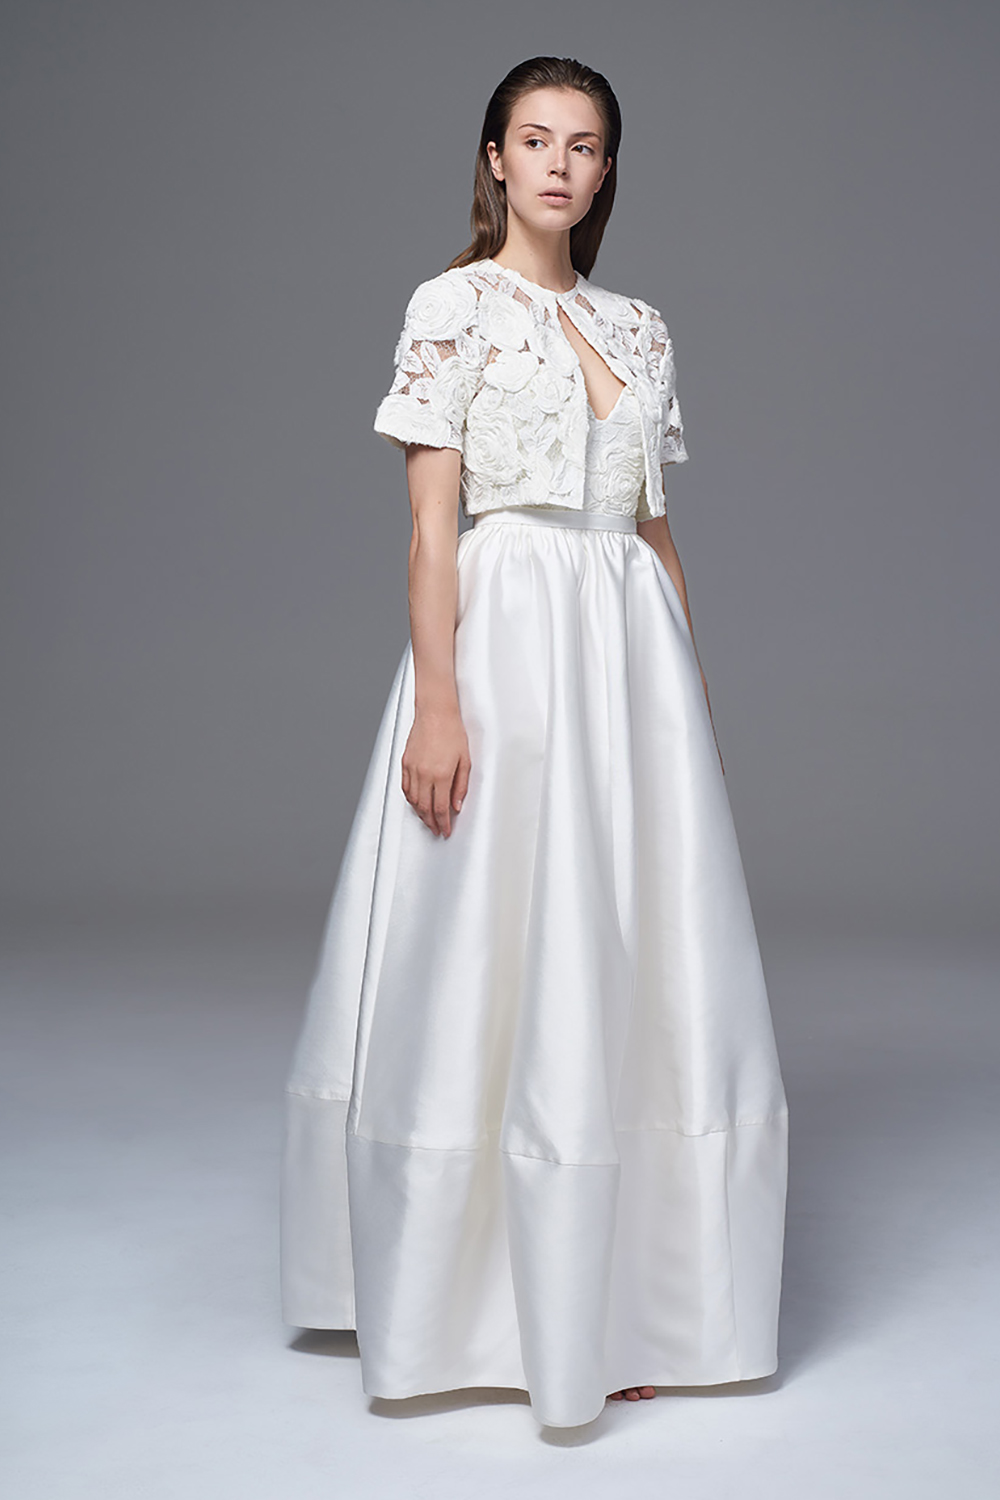 ALEXA BOX PLEATED SKIRT WITH THE ROSA BOLERO JACKET BRIDAL WEDDING DRESS BY HALFPENNY LONDON